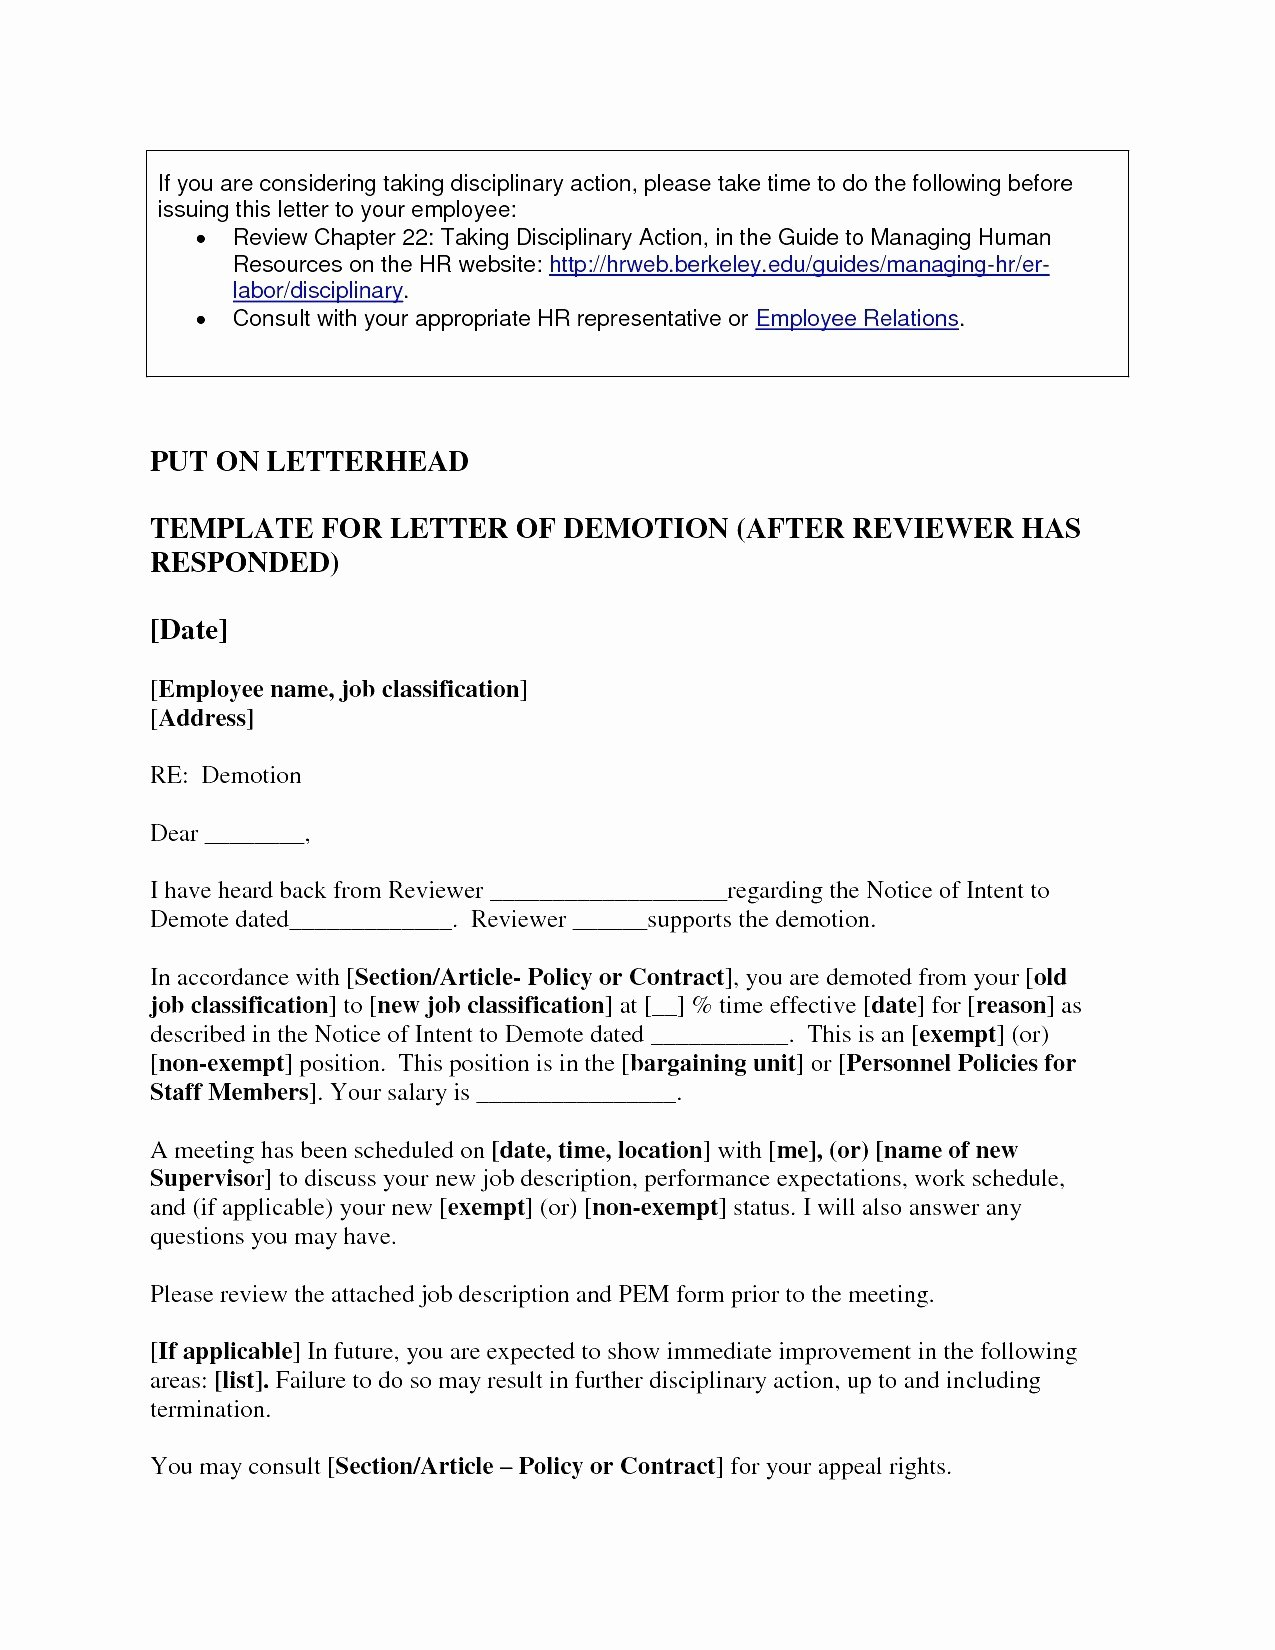 Voluntary Demotion Letter Template Best Of Demotion Letter Sample Pdf